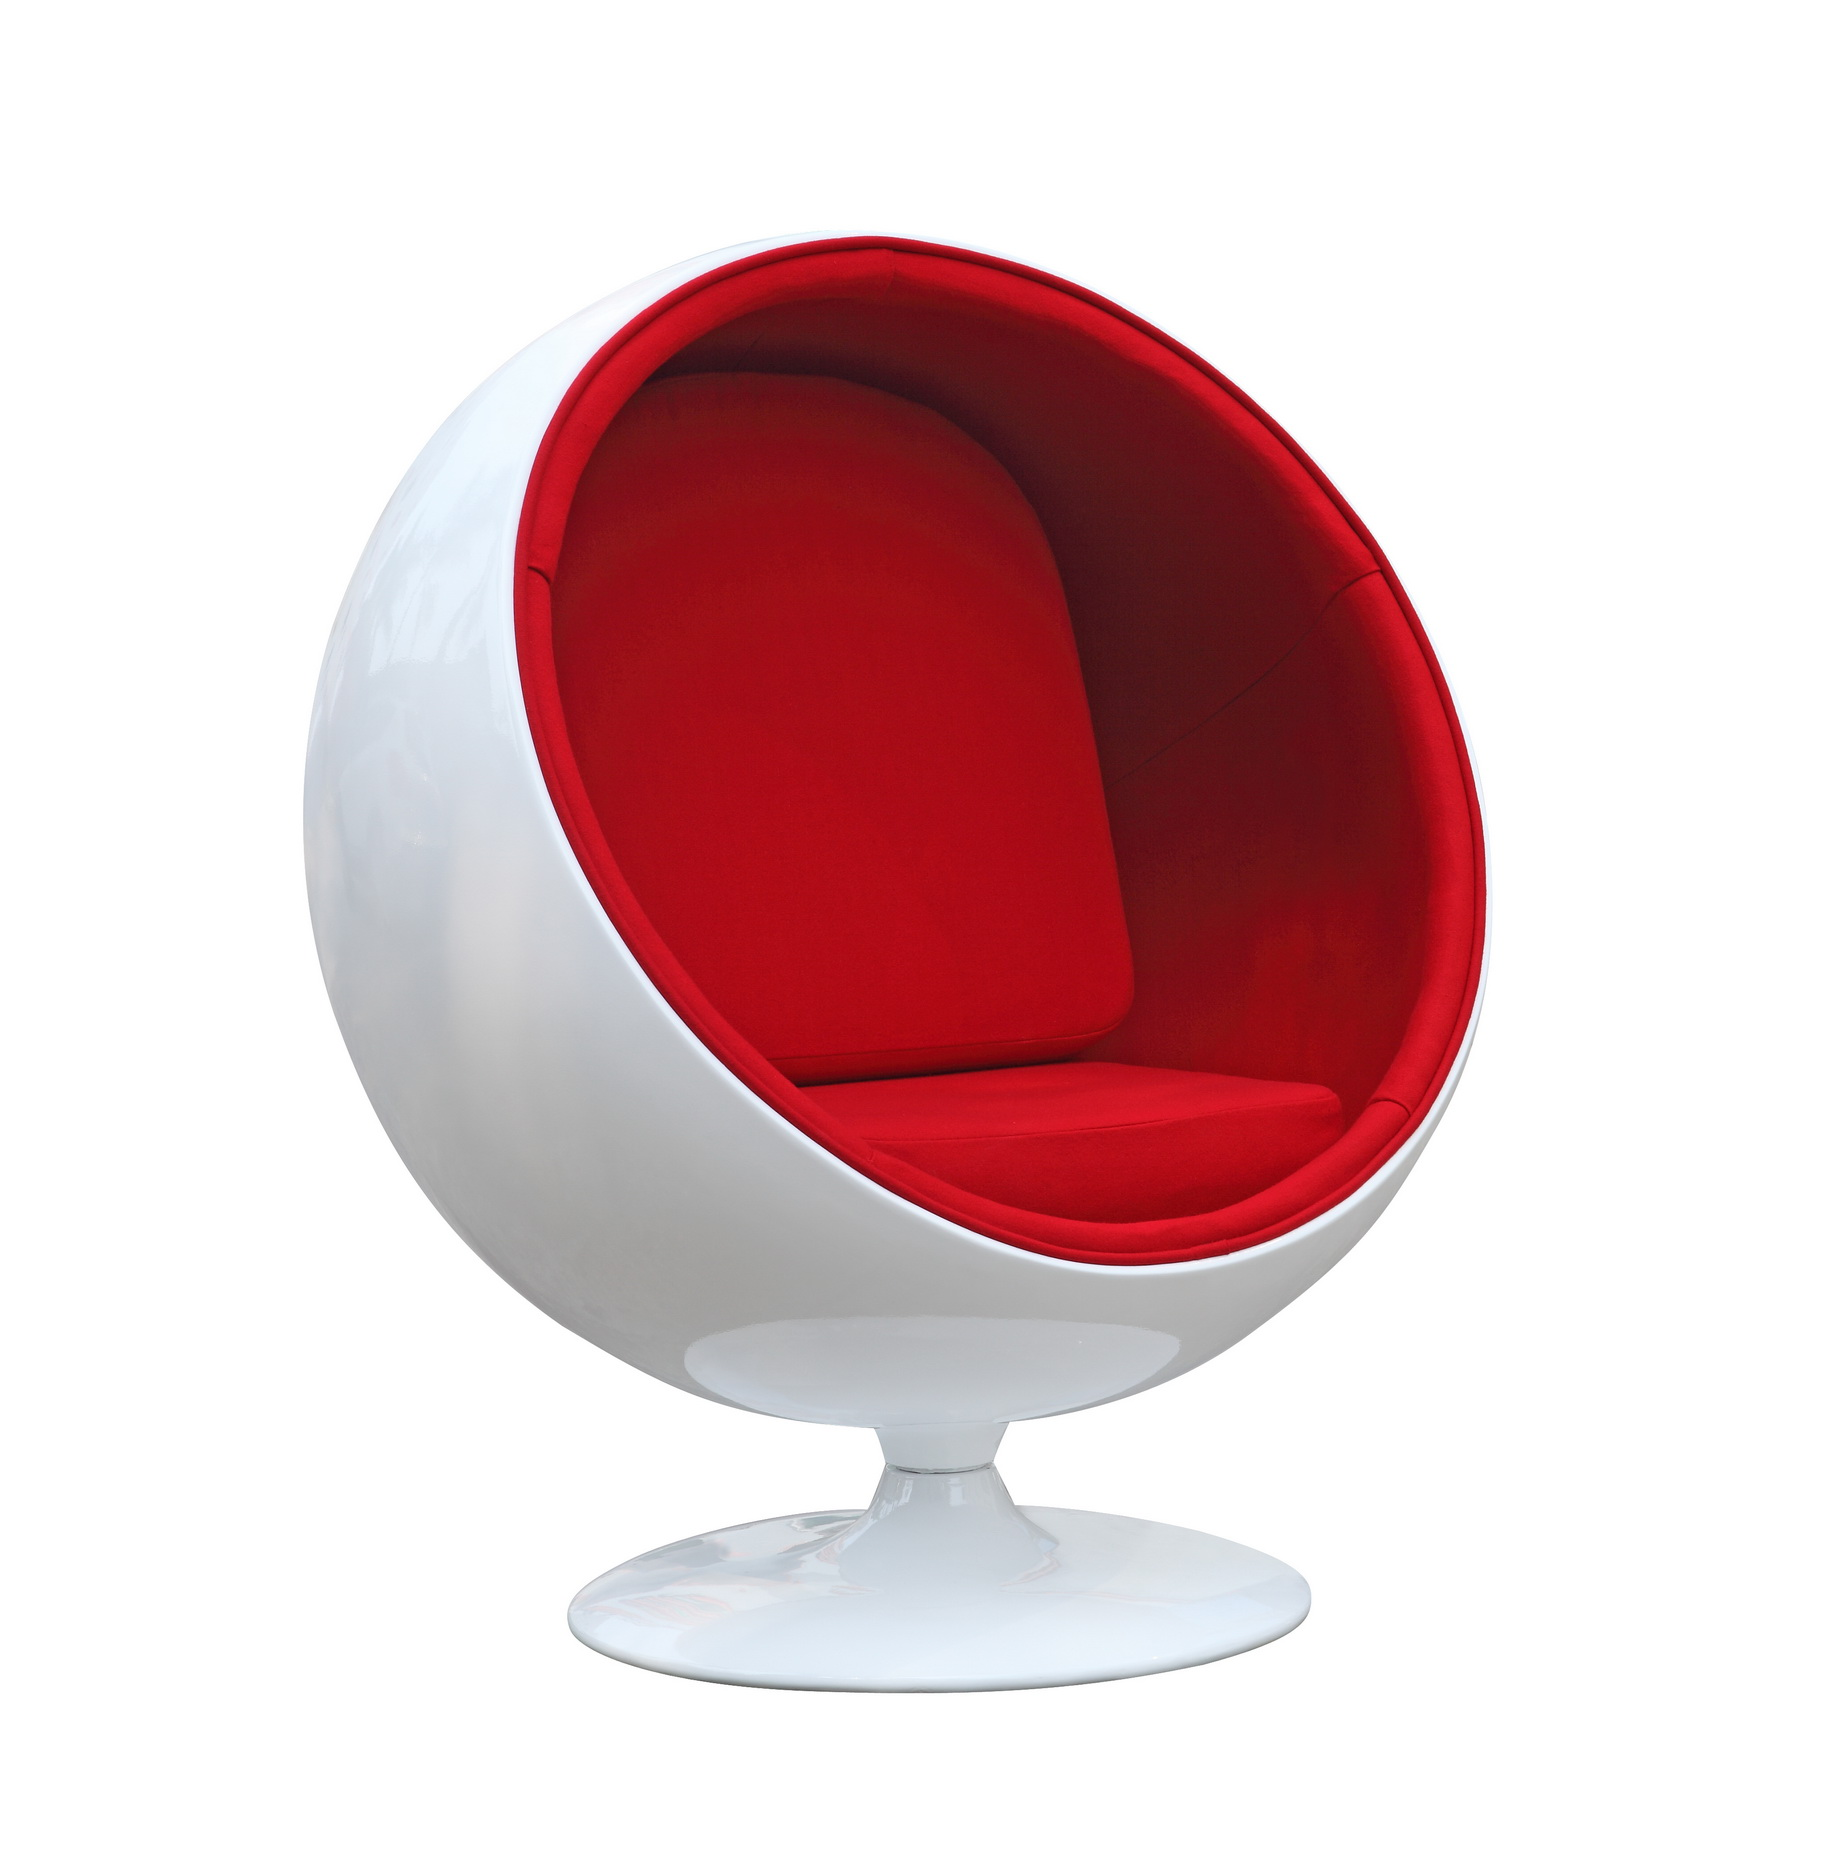 kids eei pnk chairs ball eero style chair aarnio